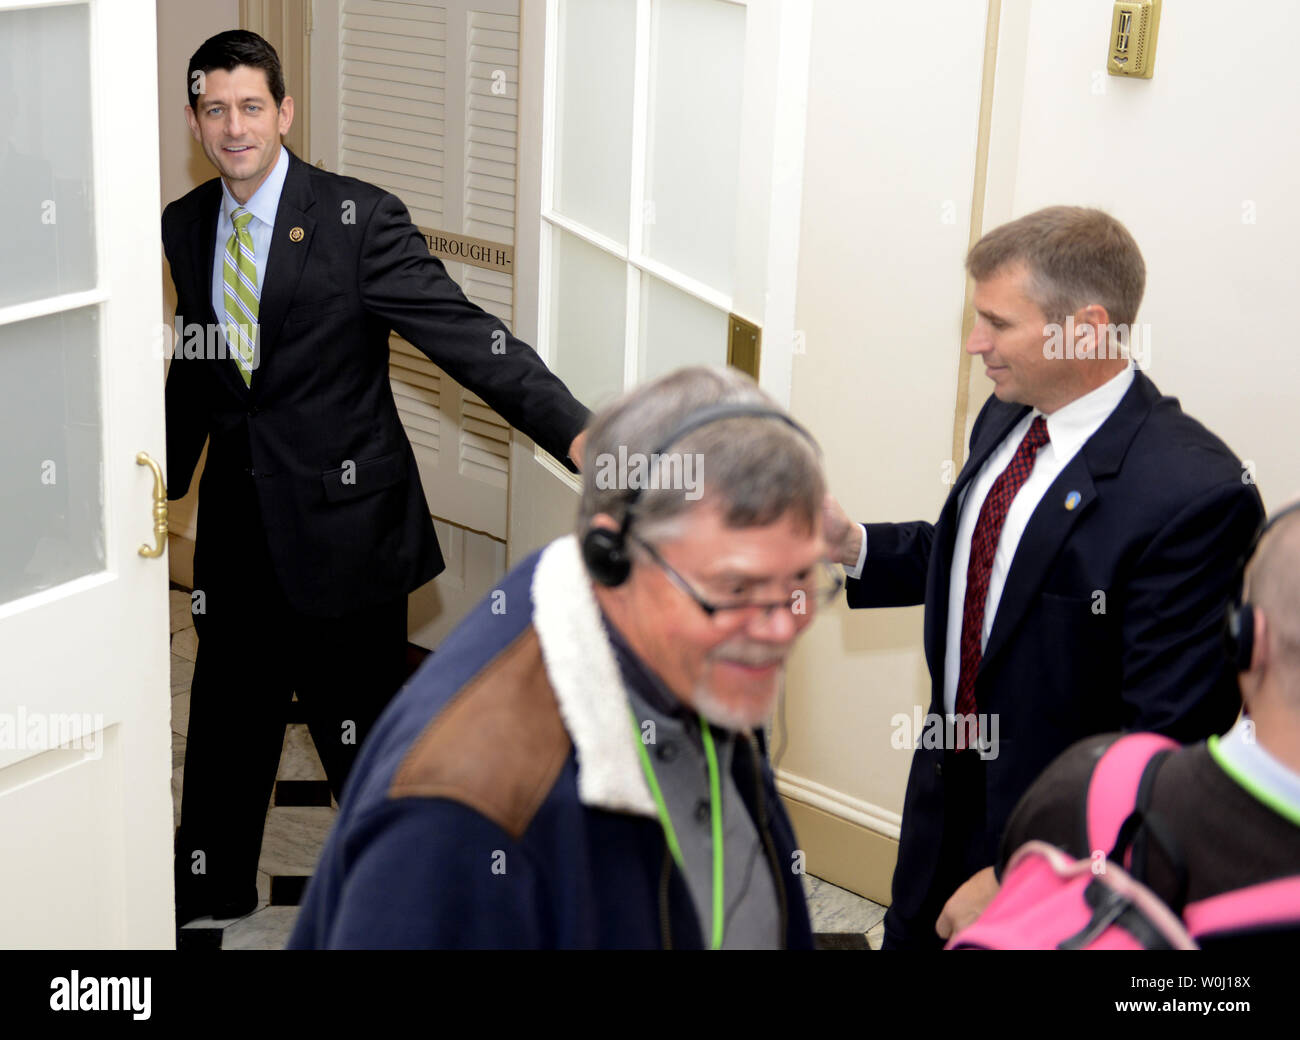 Rep. Paul Ryan (R-WI) enters a doorway in the basement of the U.S. Capitol, as he walks past tourists, October 27, 2015, in Washington, DC. Paul is expected to take the Speaker's gavel, succeeding Rep. John Boehner (R-OH), who is stepping down.      Photo by Mike Theiler/UPI - Stock Image